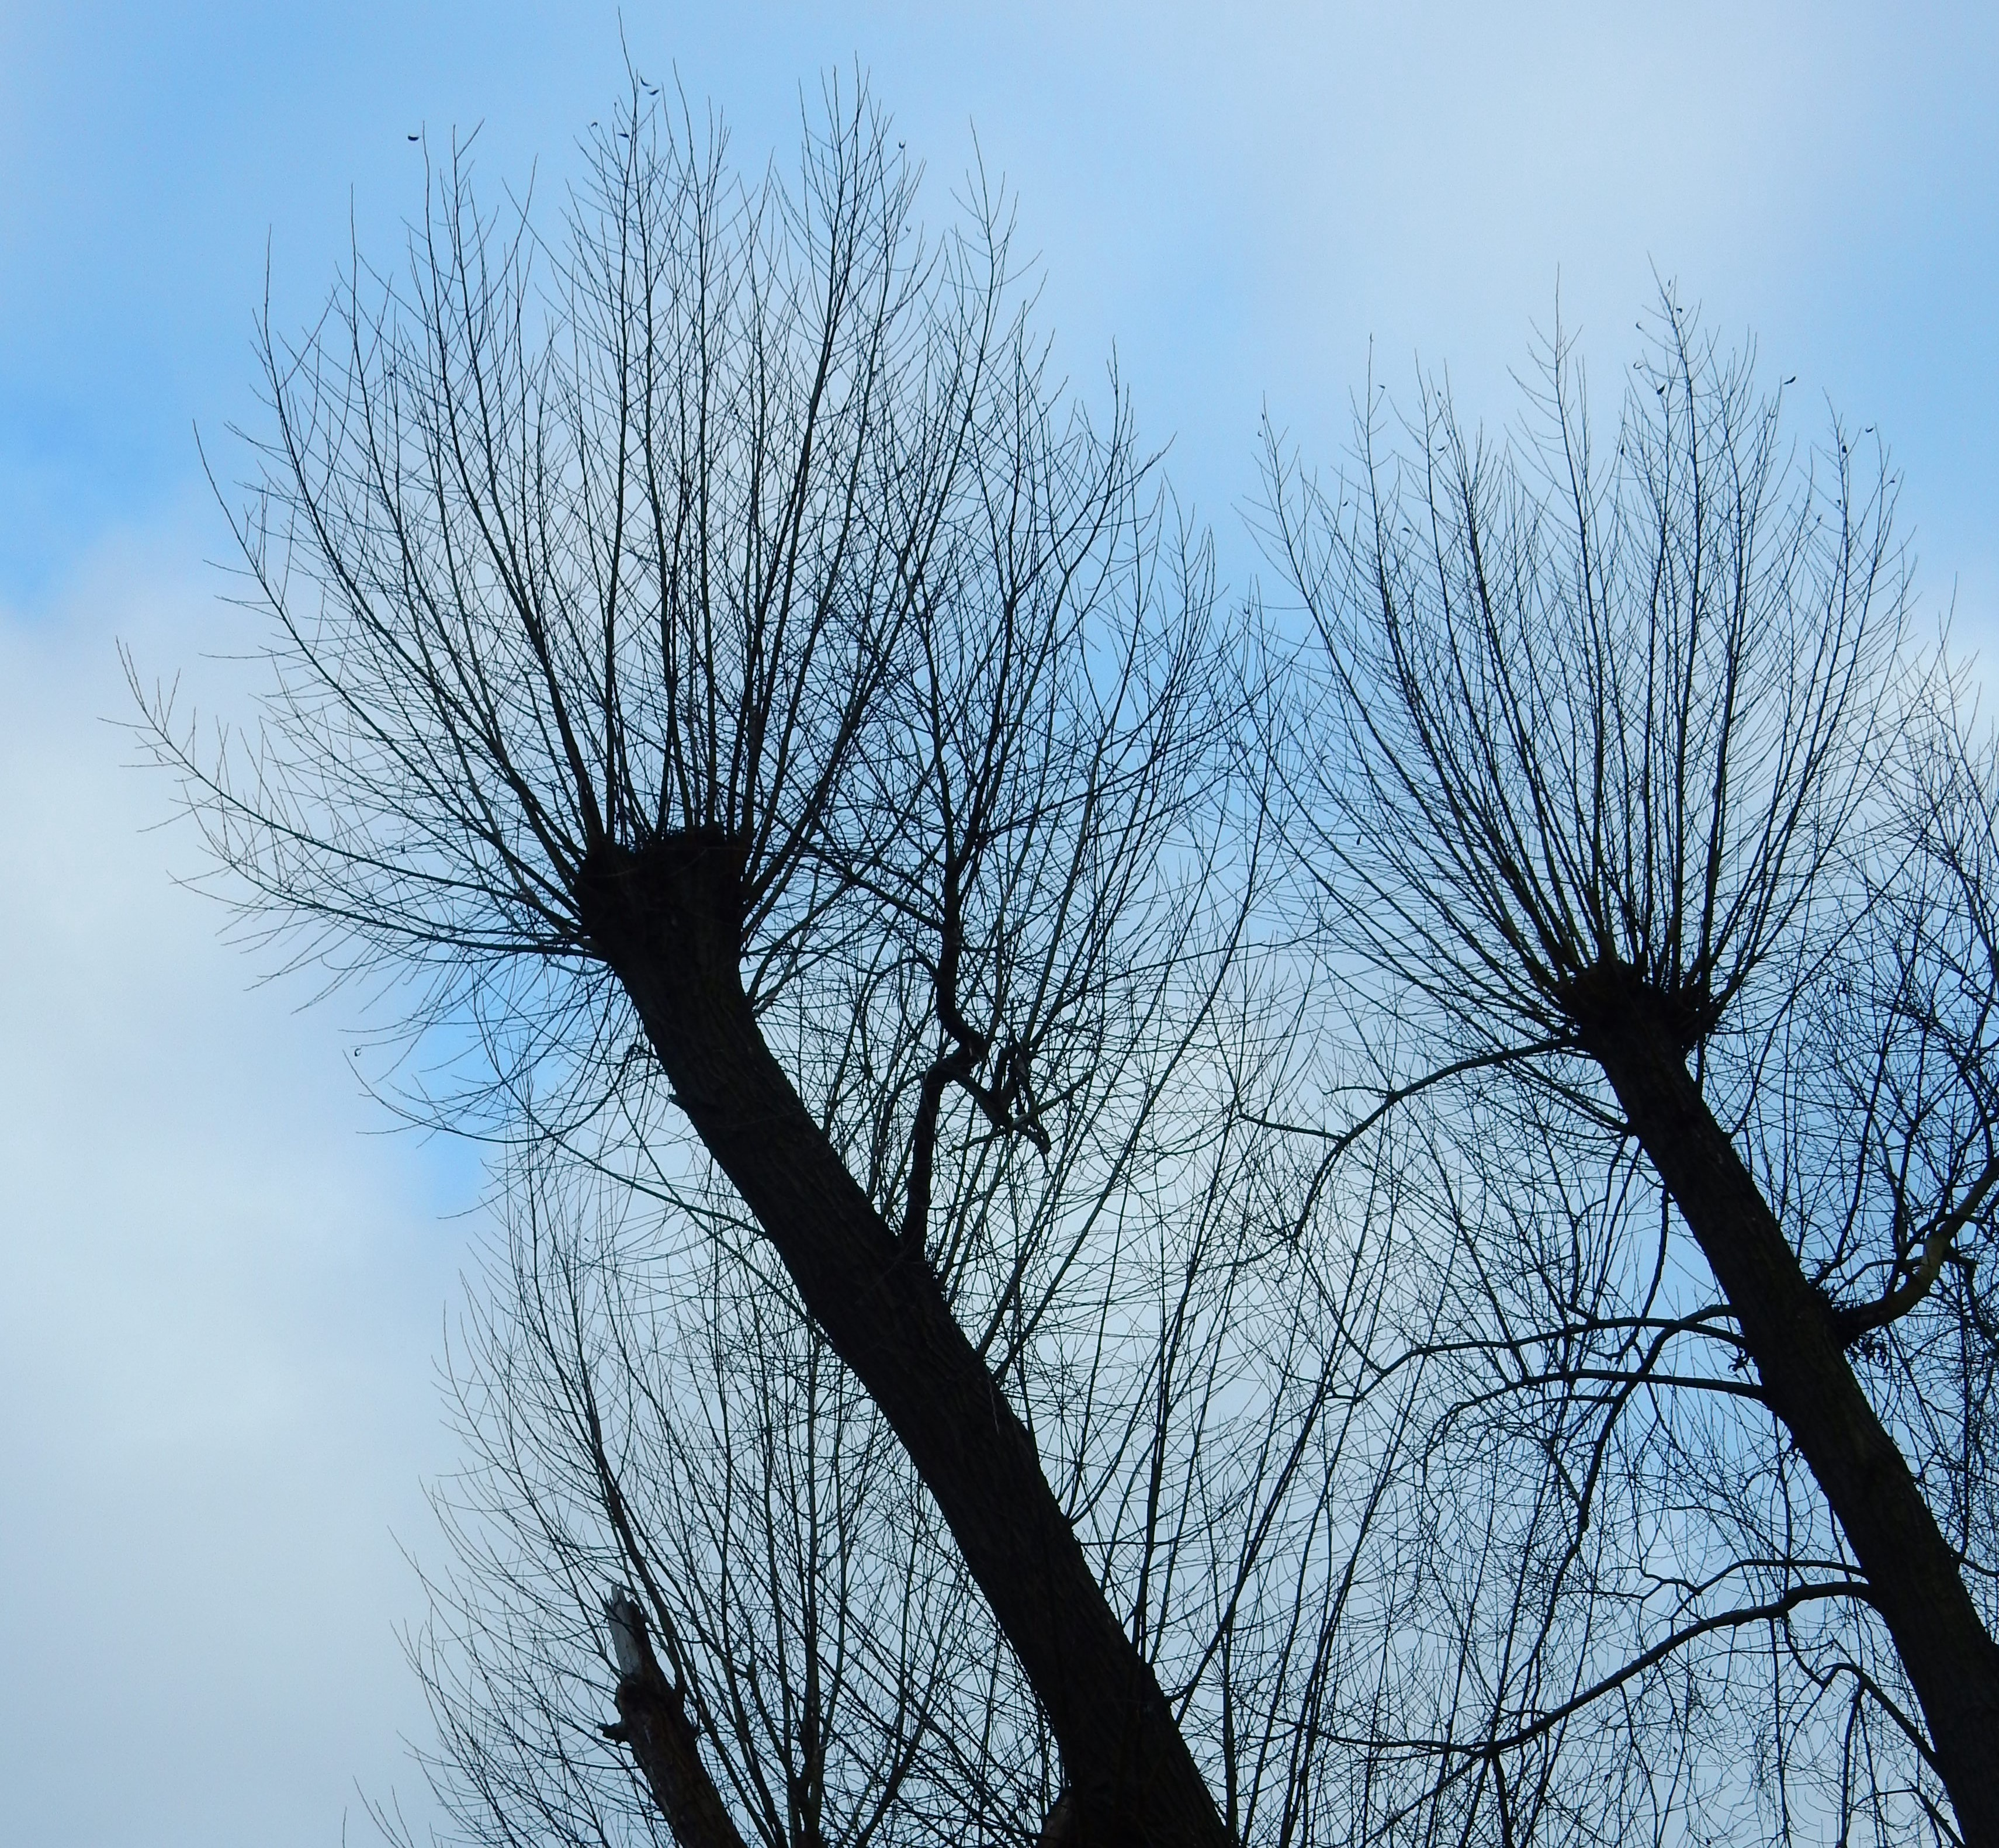 Willow trees with pollarded tops: the spindly branches reach directly upwards in stead of weeping downwards.